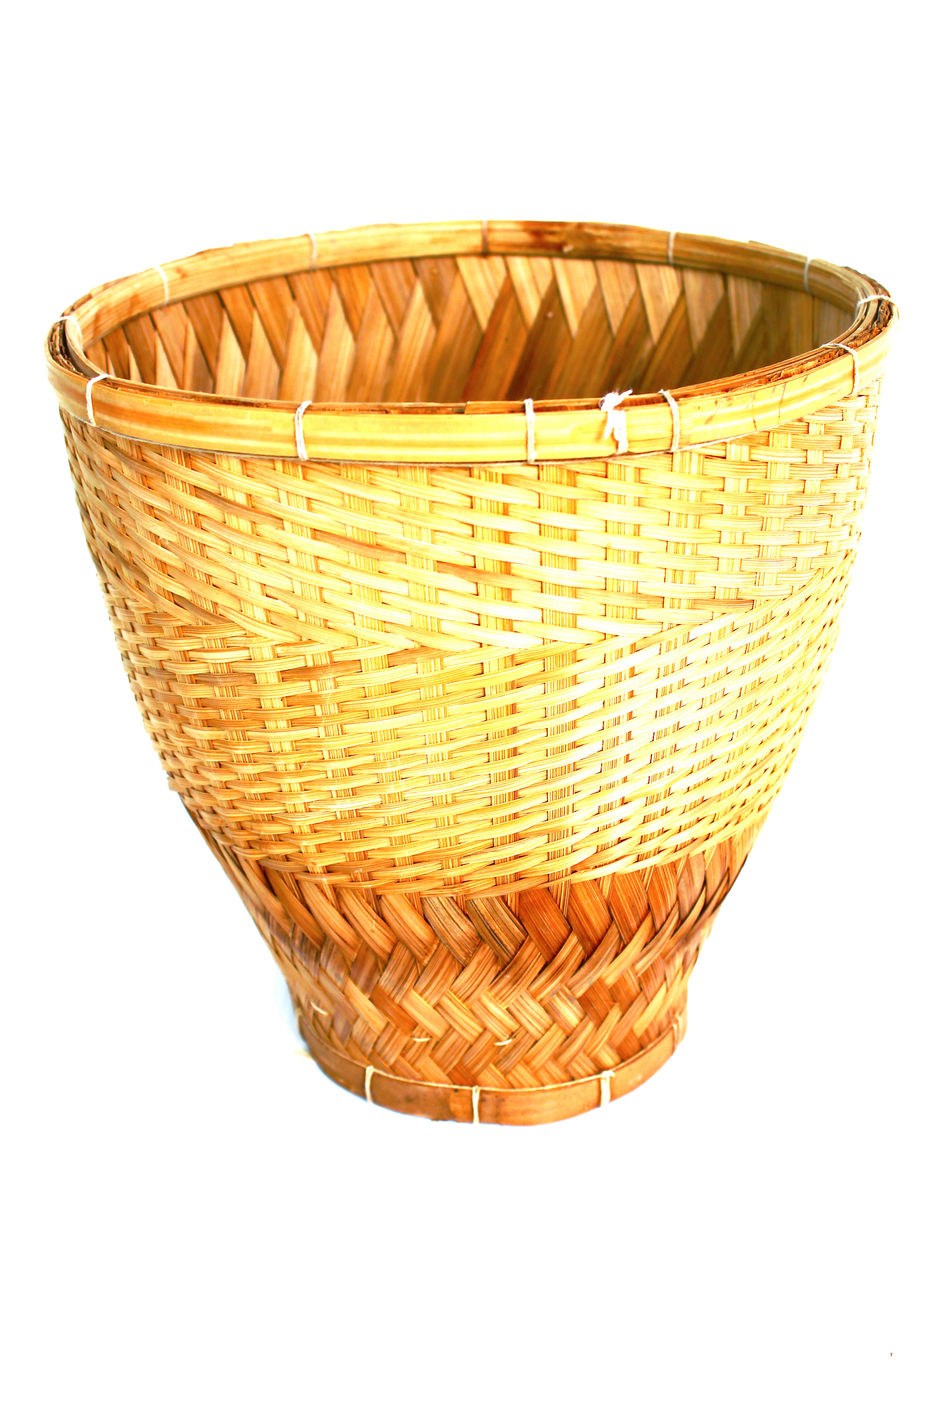 Food Food And Drink Kitchen Kitchen Utensil Kitchen Utensils Kitchenware No People Object Object Photography Objects Objects Of Interest Rice Rice Stick Streem White Background Woven Woven Bamboo Woven Pattern Wovenhand